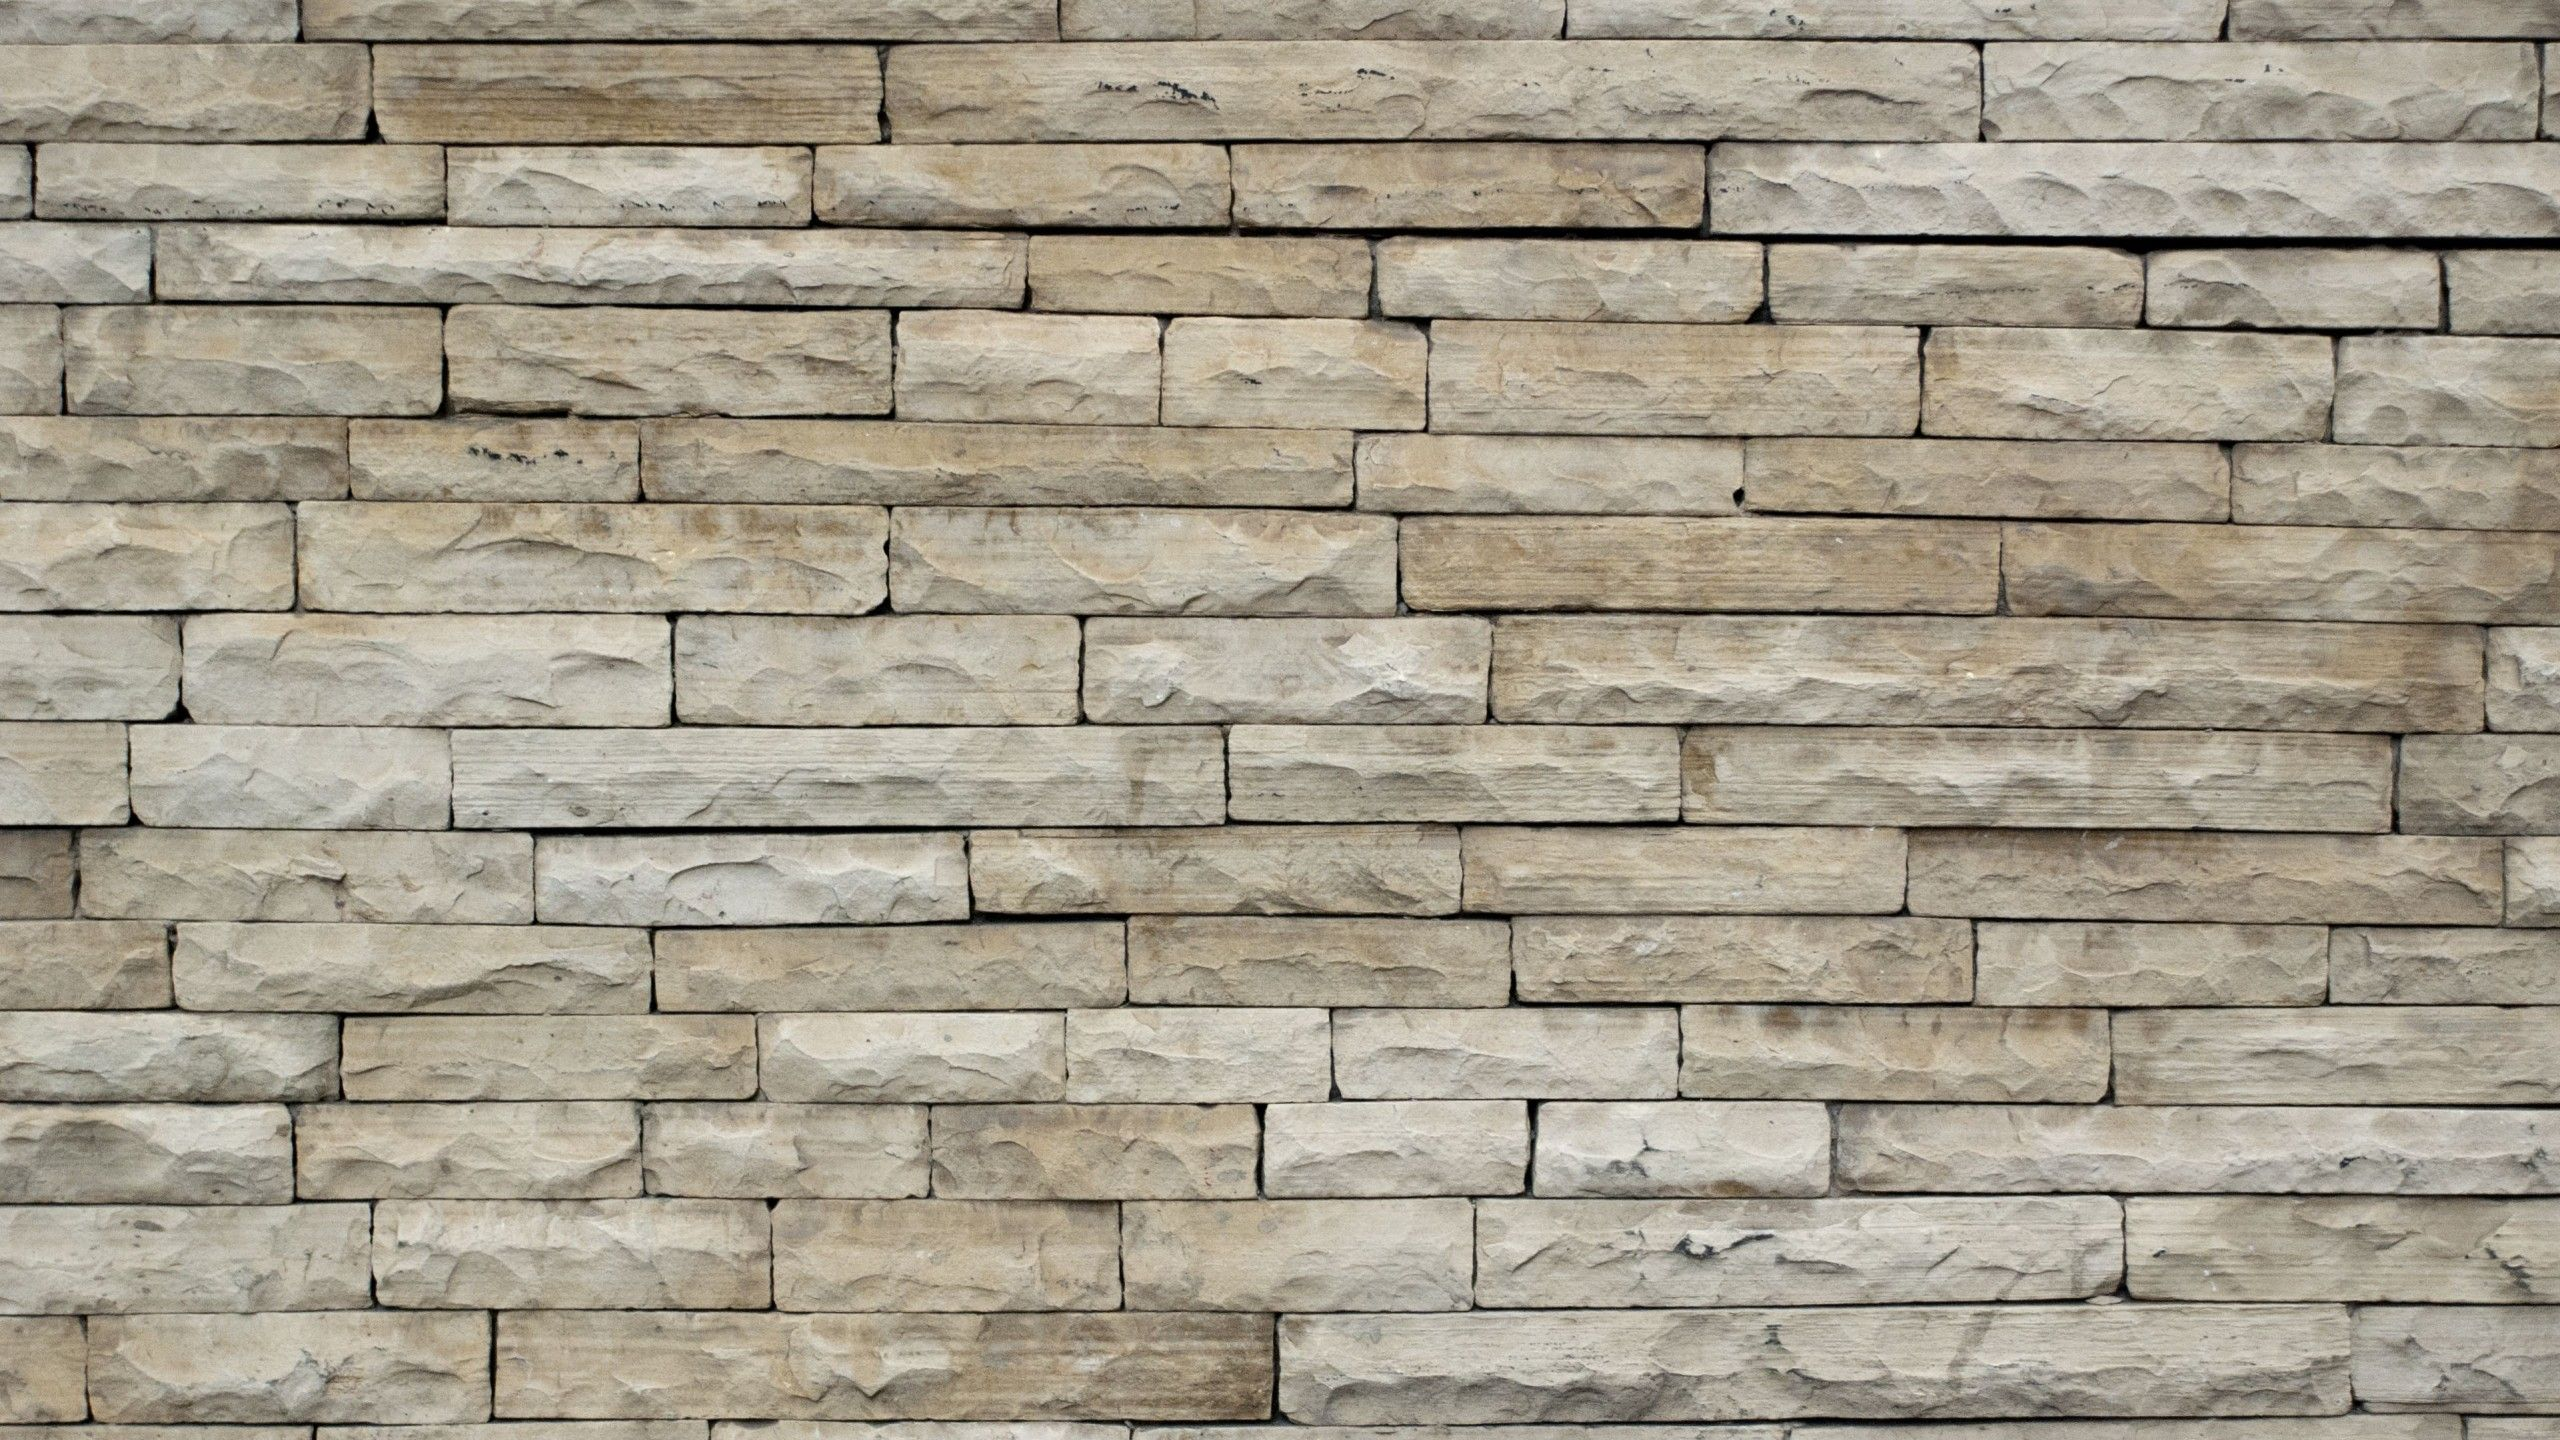 Stone wall hd wallpaper 1390178 offices reception pinterest wall hd stone walls and - Flaunt your natural stone wall finishes ...